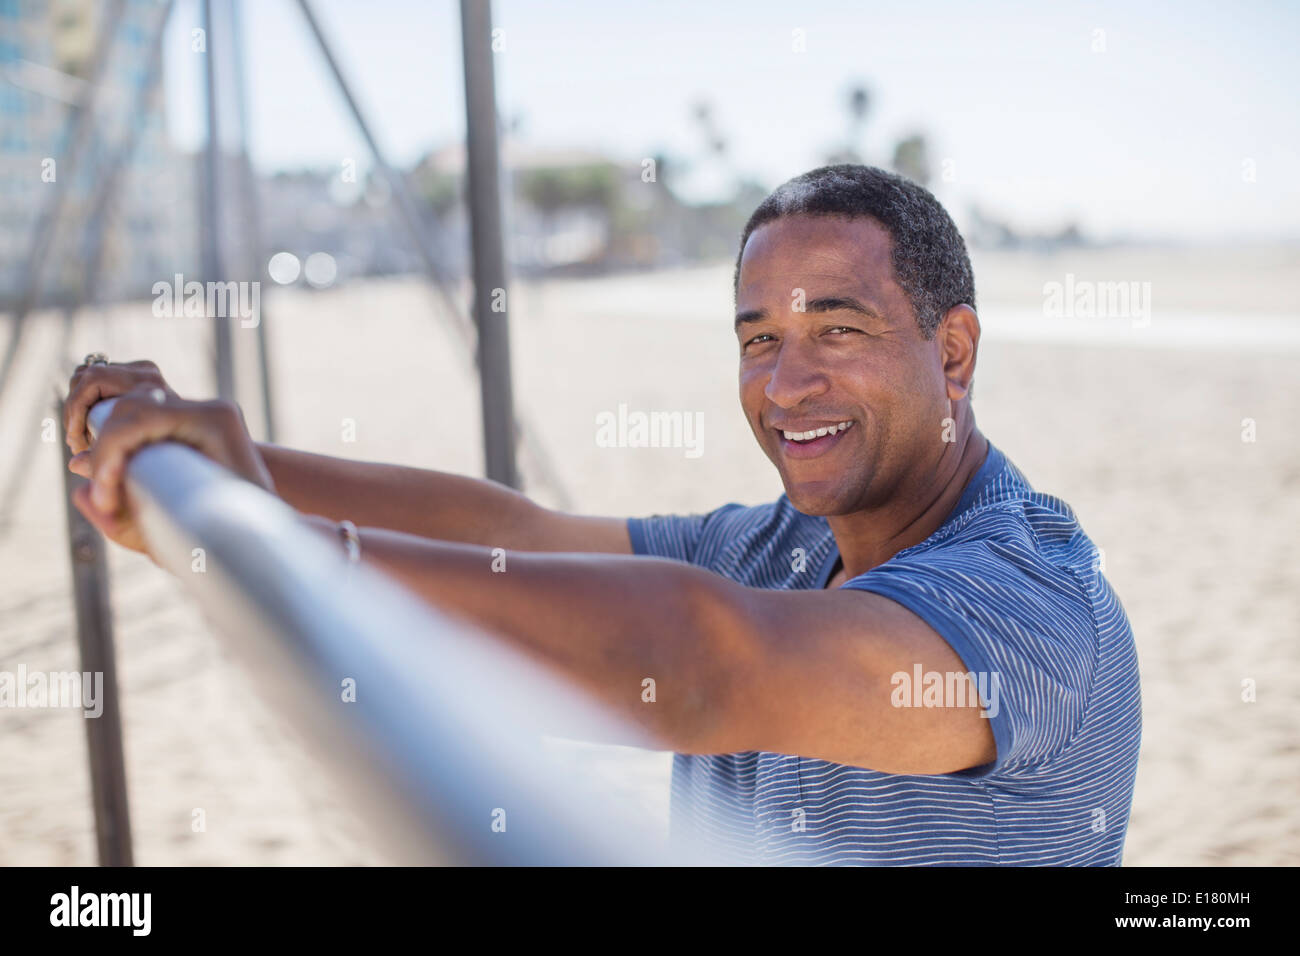 Portrait of senior man leaning on bar at beach playground - Stock Image